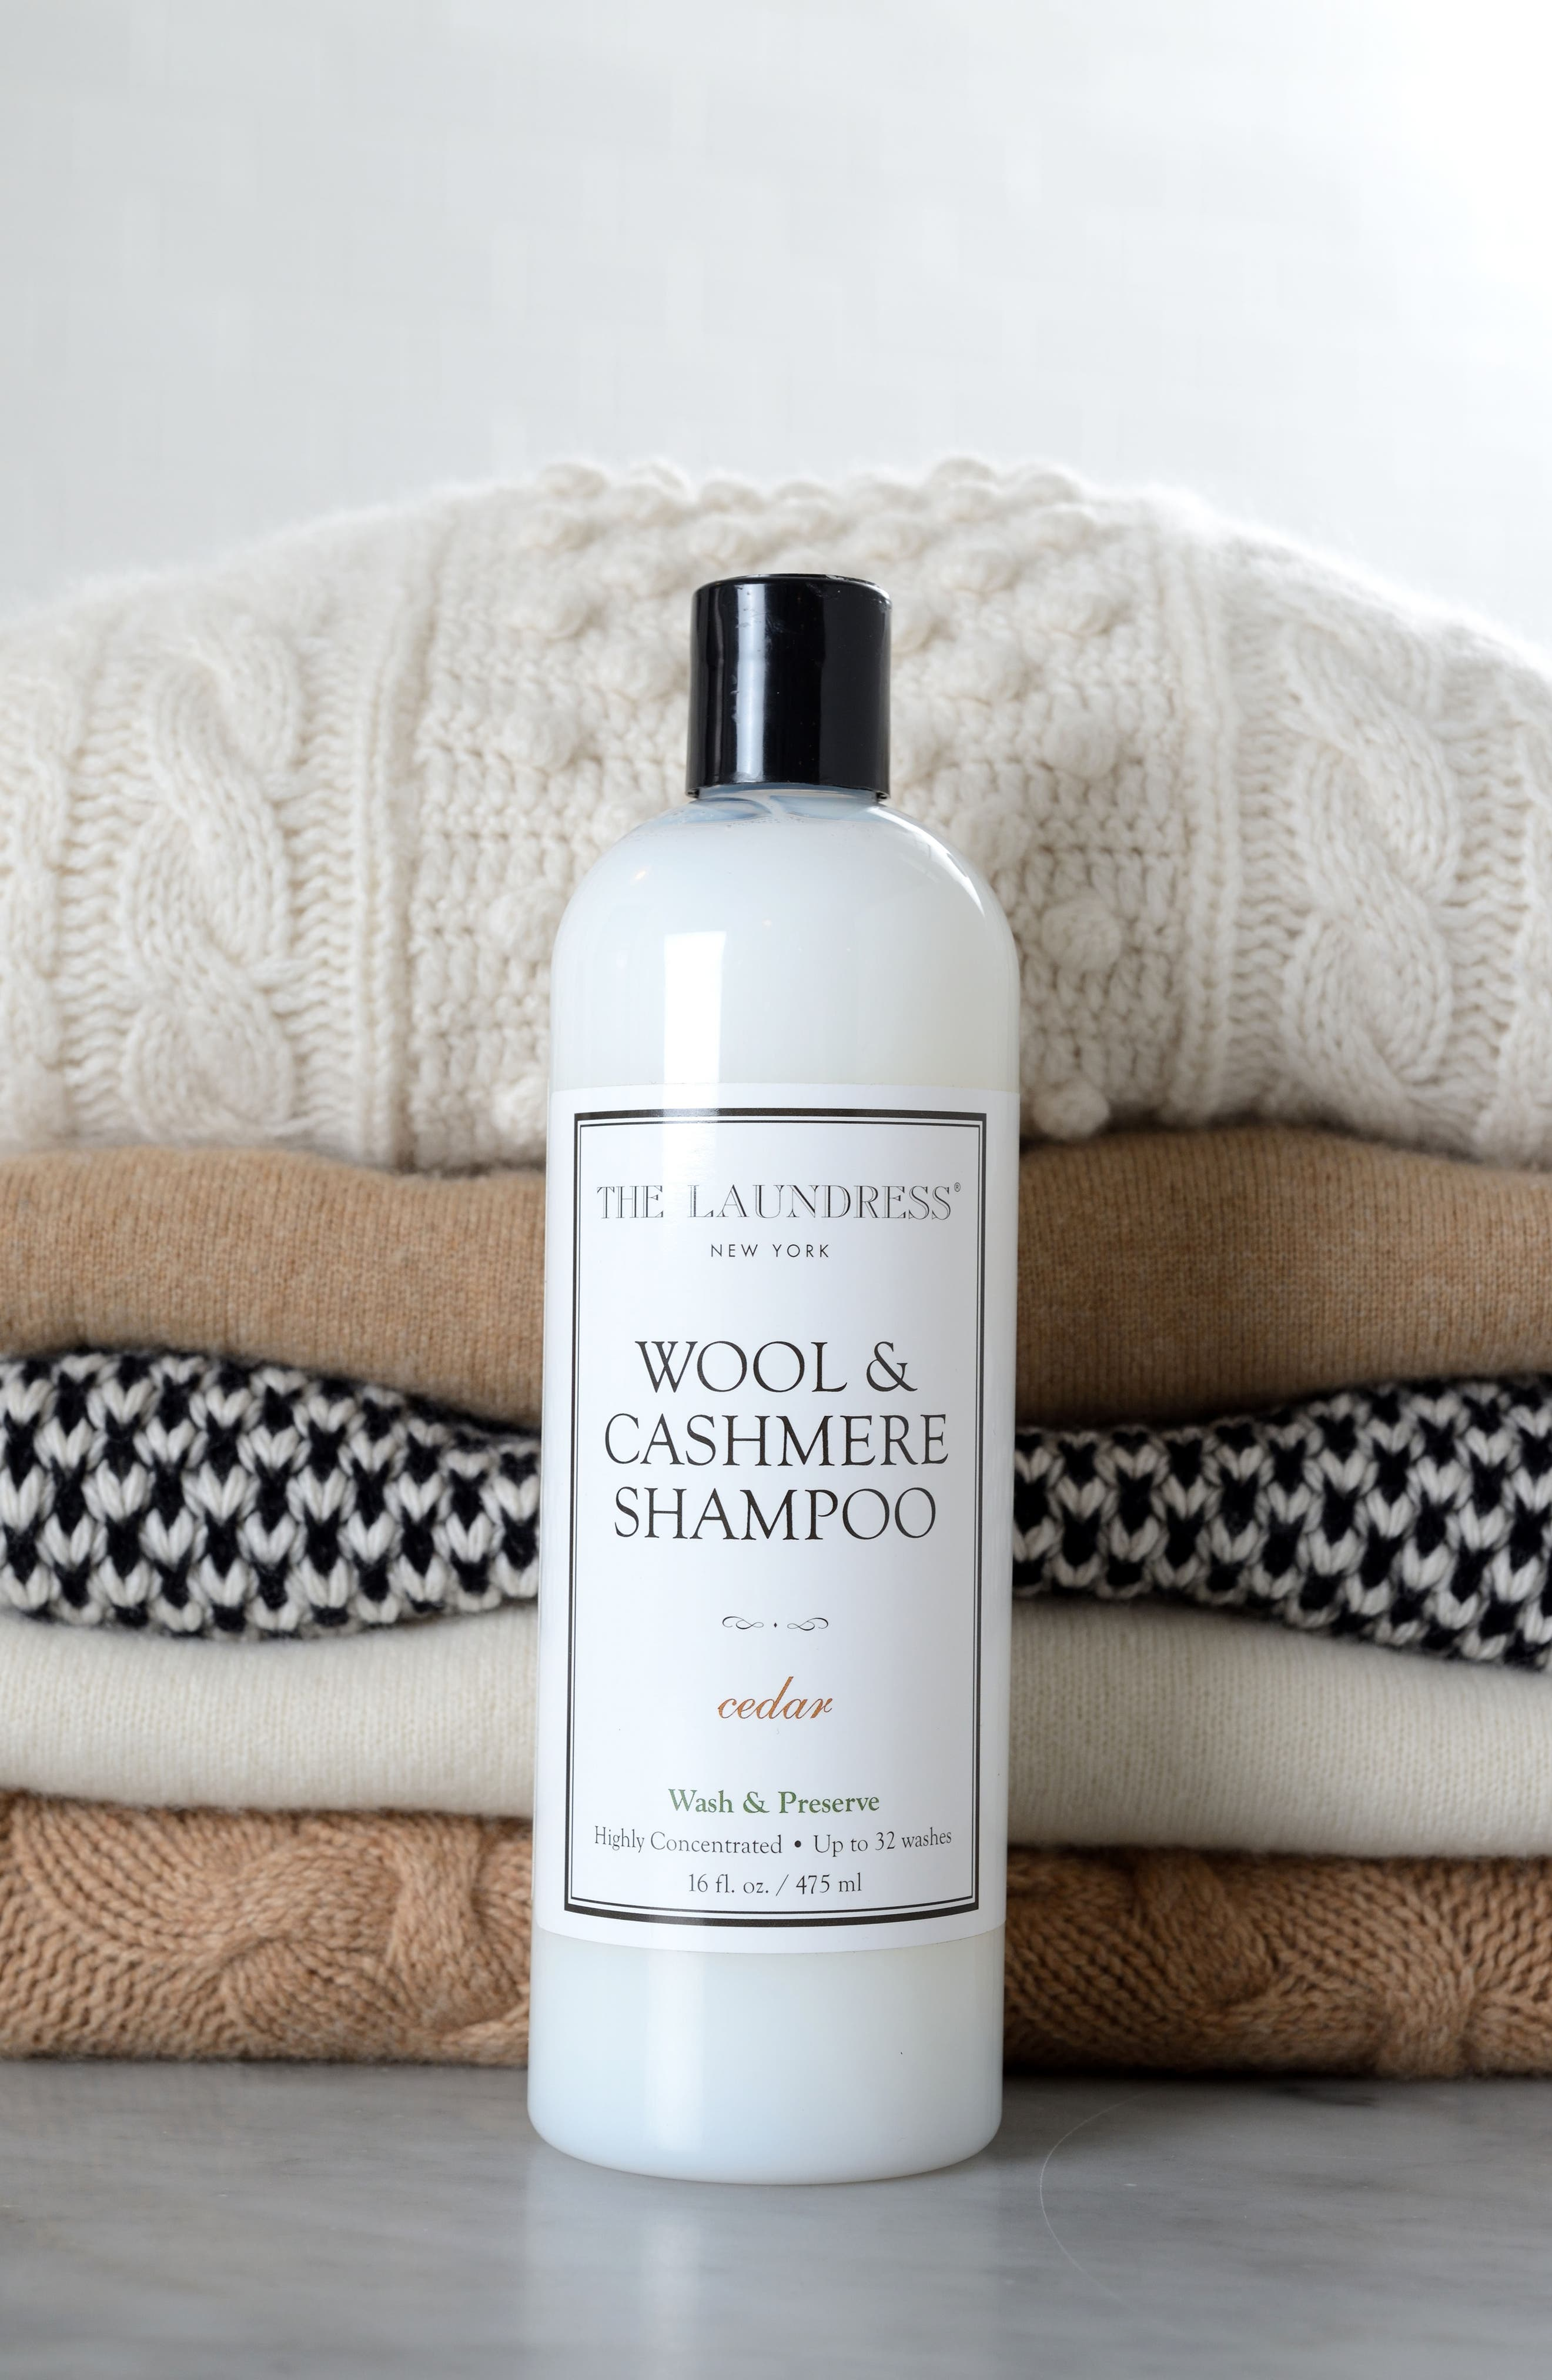 THE LAUNDRESS,                             Wool & Cashmere Shampoo,                             Alternate thumbnail 2, color,                             960